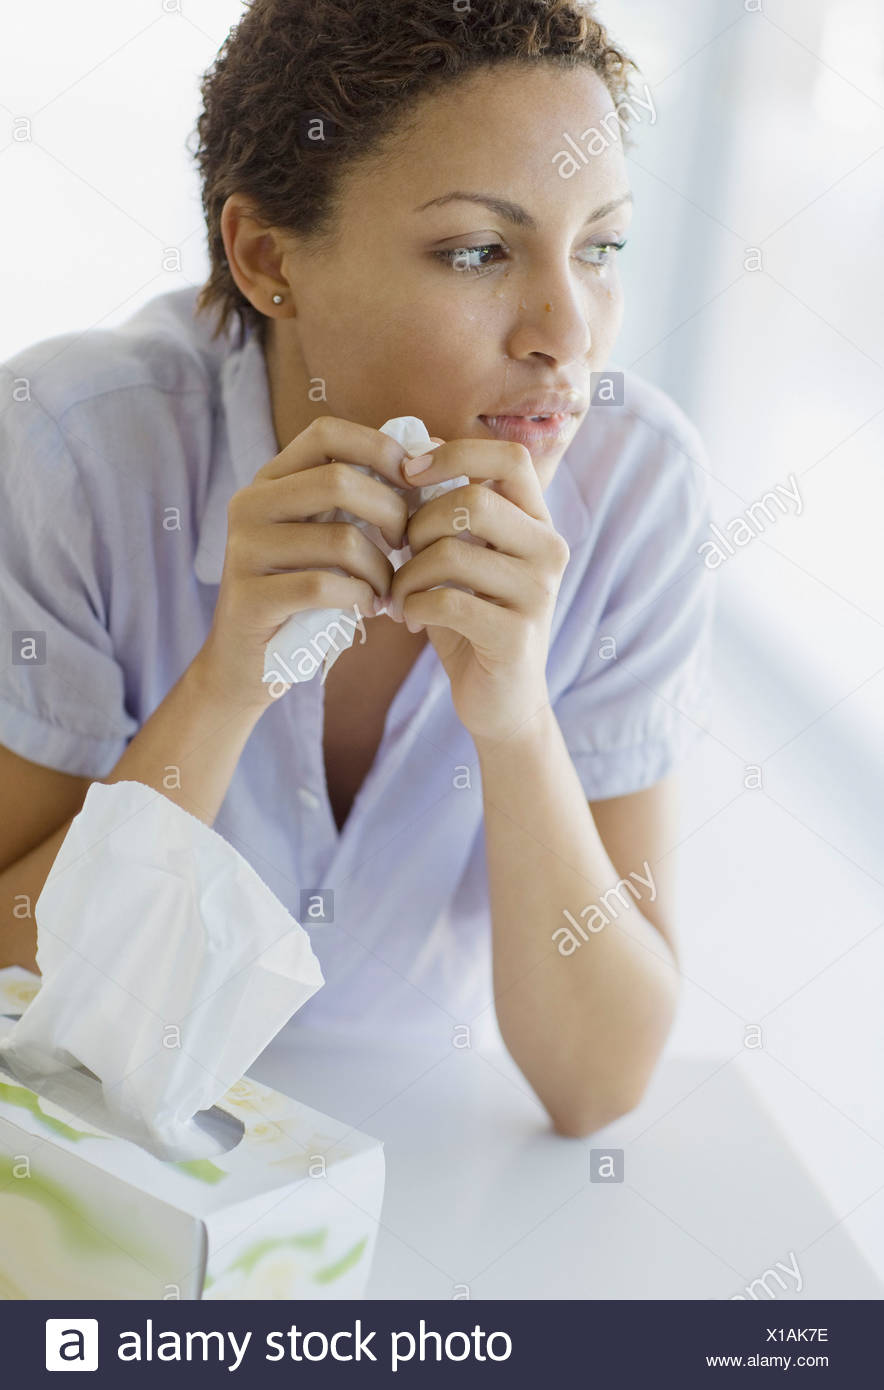 Crying woman holding tissue - Stock Image